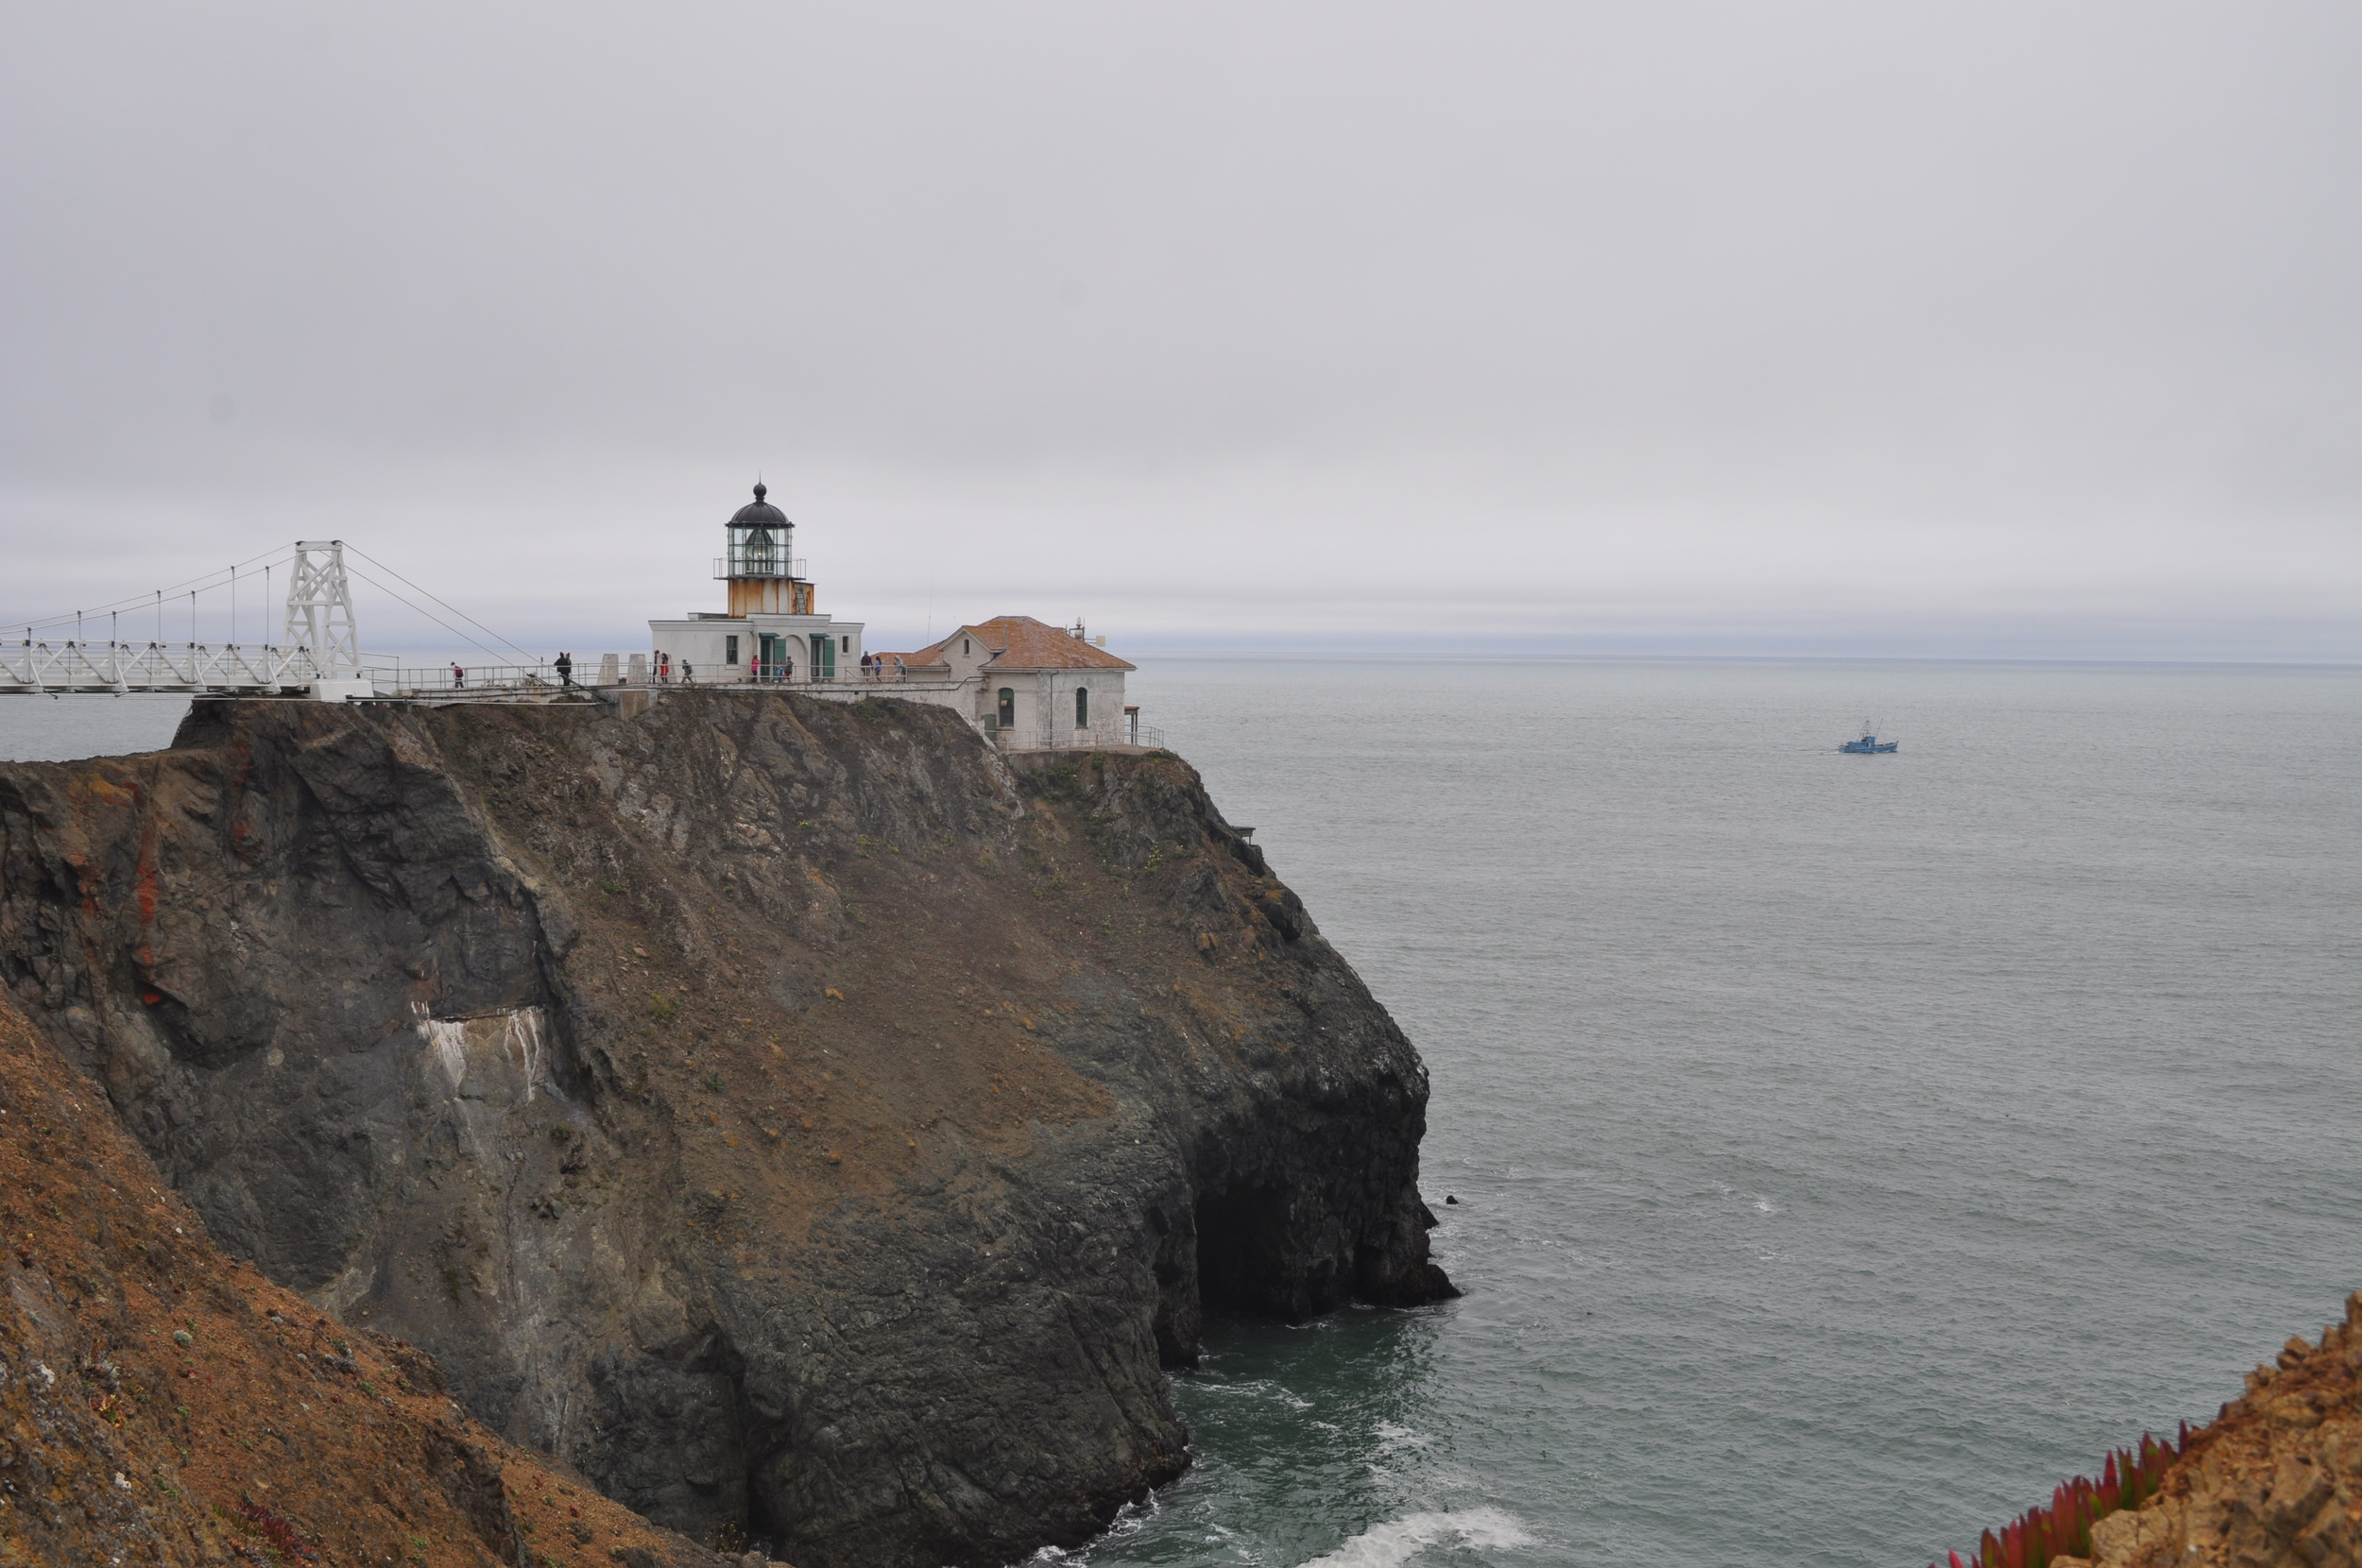 Down from the windiest place on earth is this little charm. This is Point Bonita Lighthouse. I have never seen anything like this! the edge of land, waves slicing into the side of the shore. You can lookout and see for a long way.